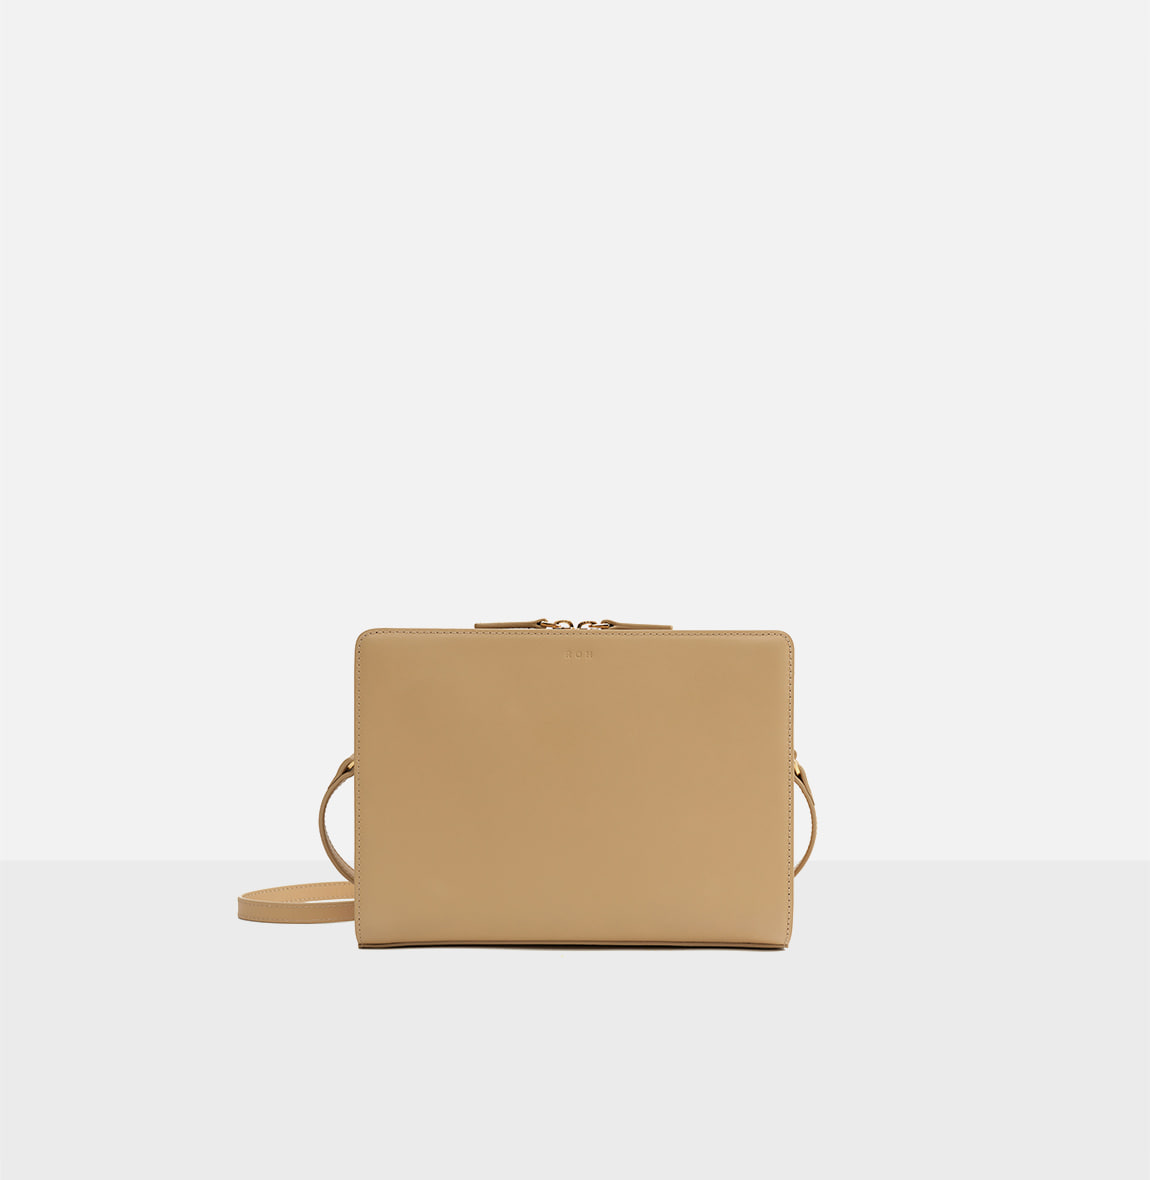 [한정기간10%할인] ROH Squarebag Light ocher